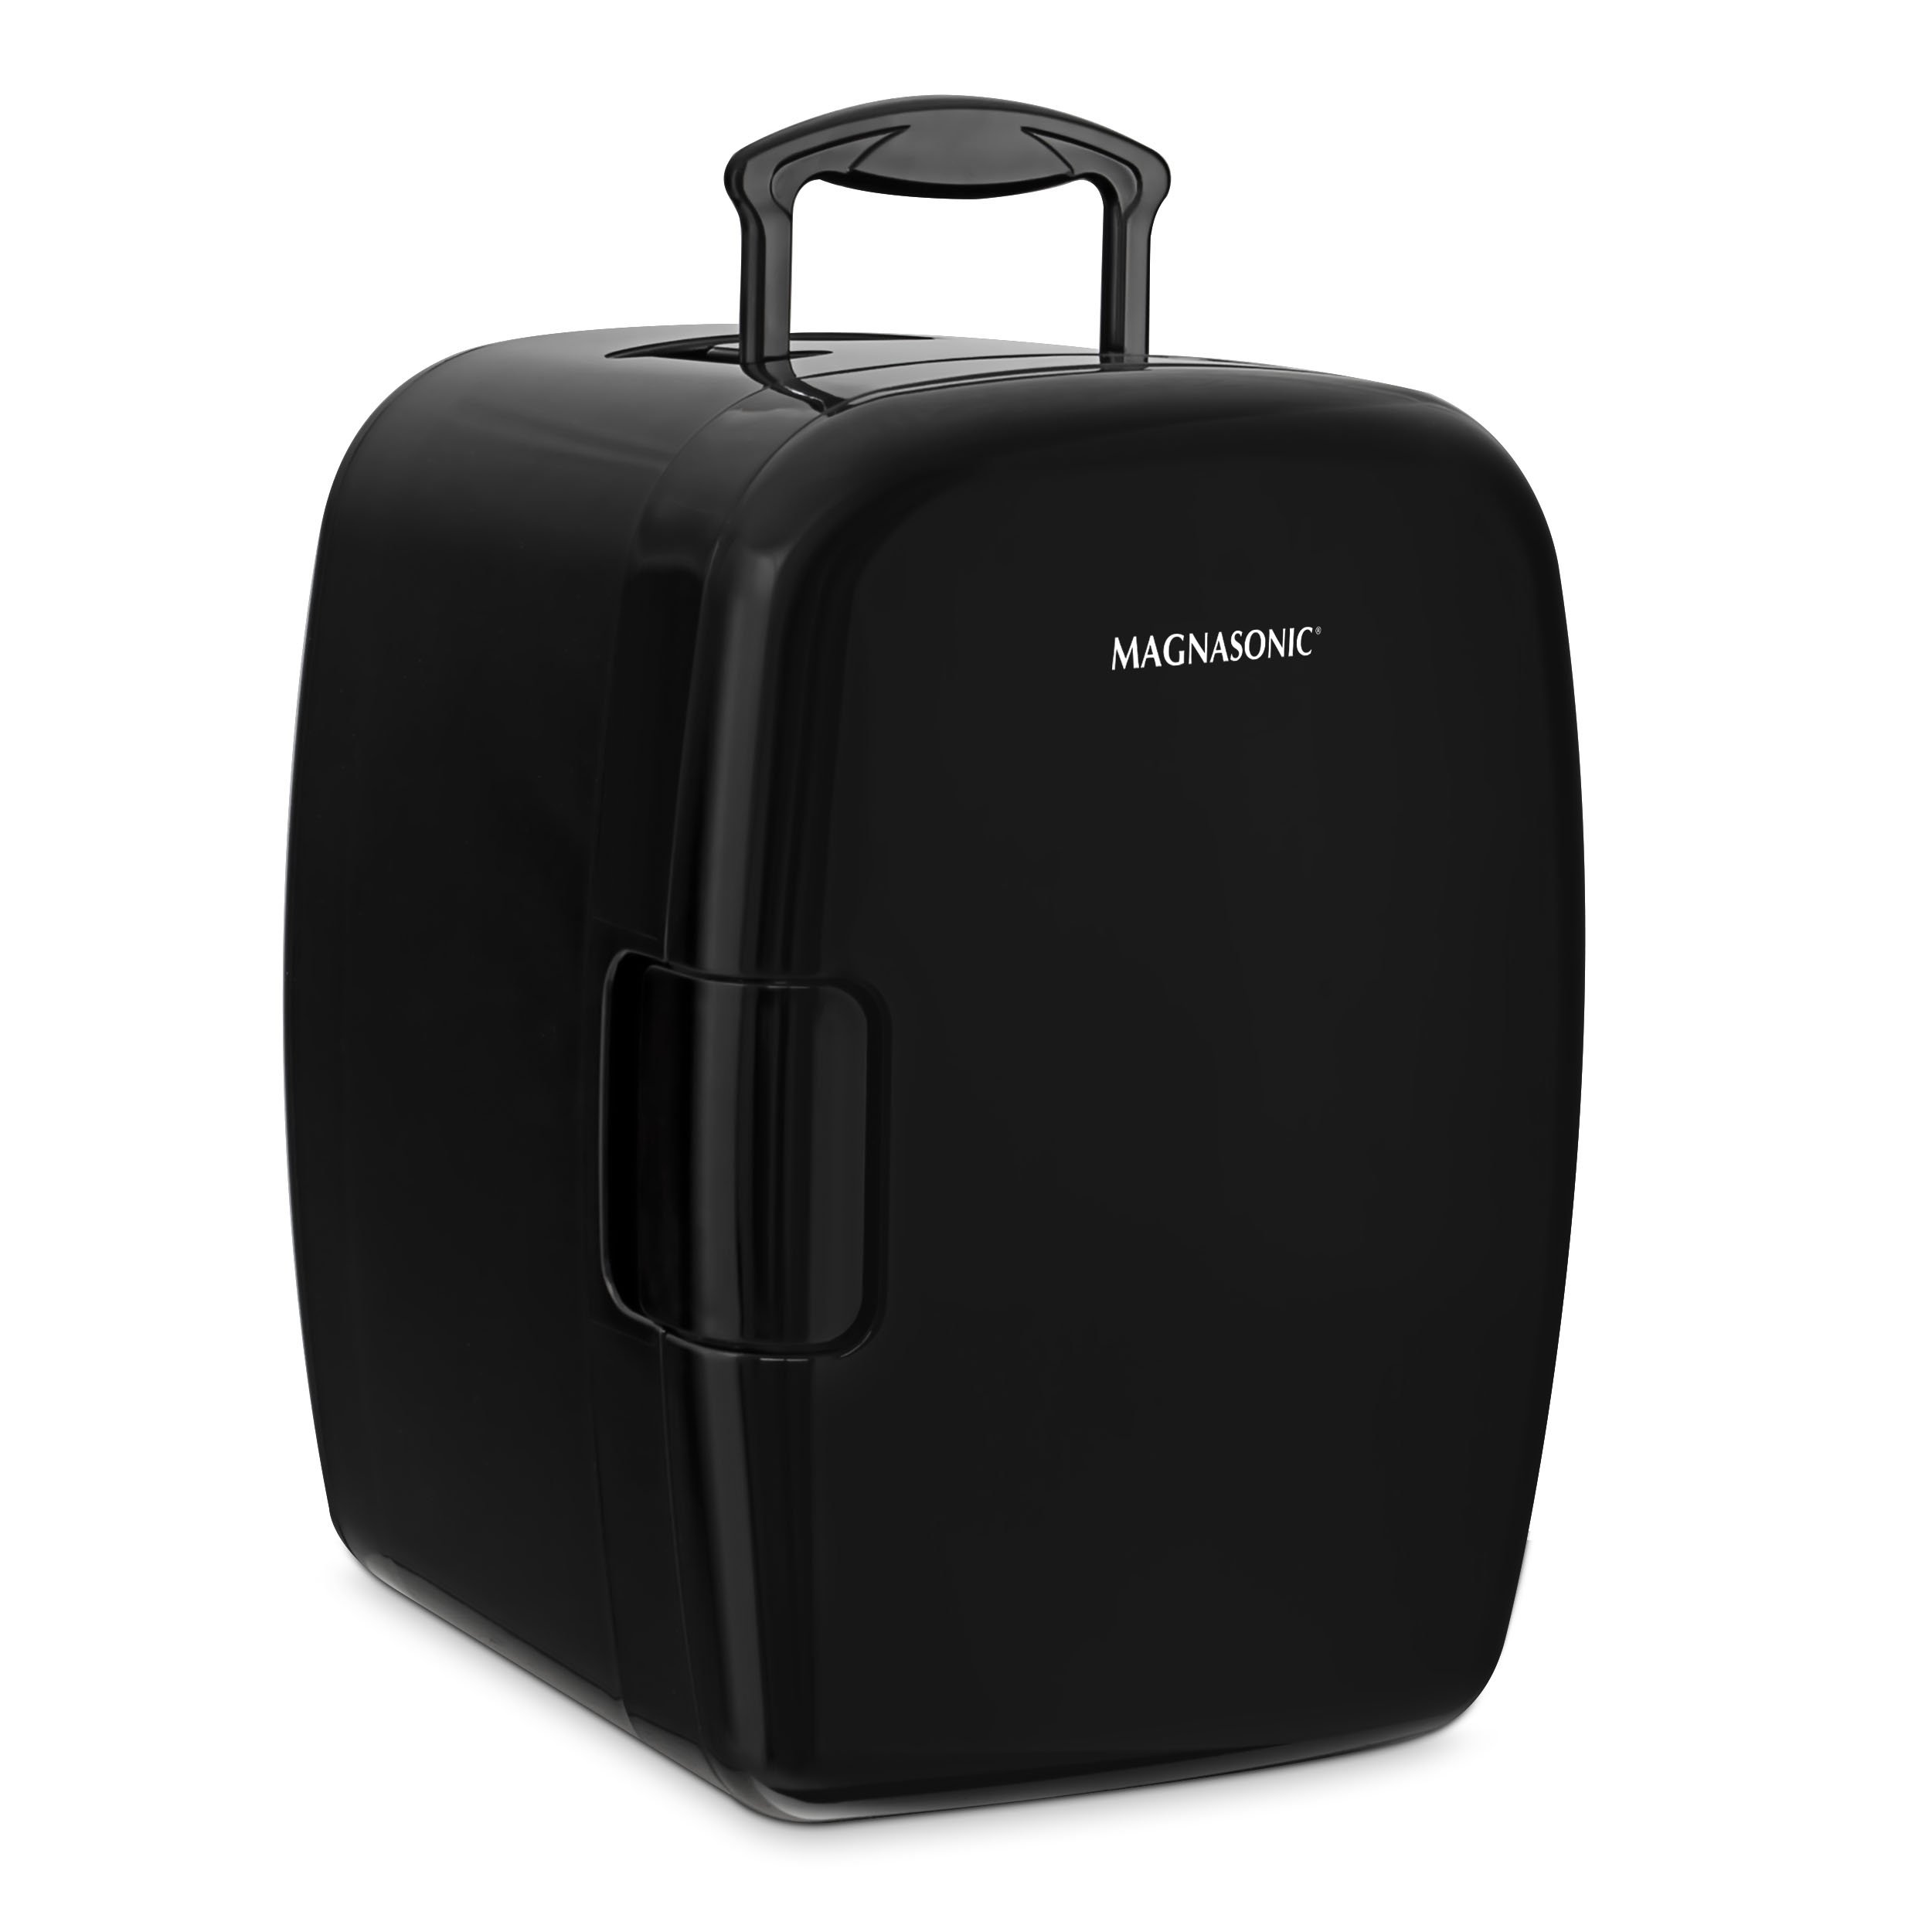 Magnasonic Portable 8 Can Mini Fridge Cooler & Warmer, 5L Capacity, Fully Insulated, Thermoelectric, 110V & 12V AC/DC Power for Home, Office, Car, RV & Boat by Magnasonic (Image #8)